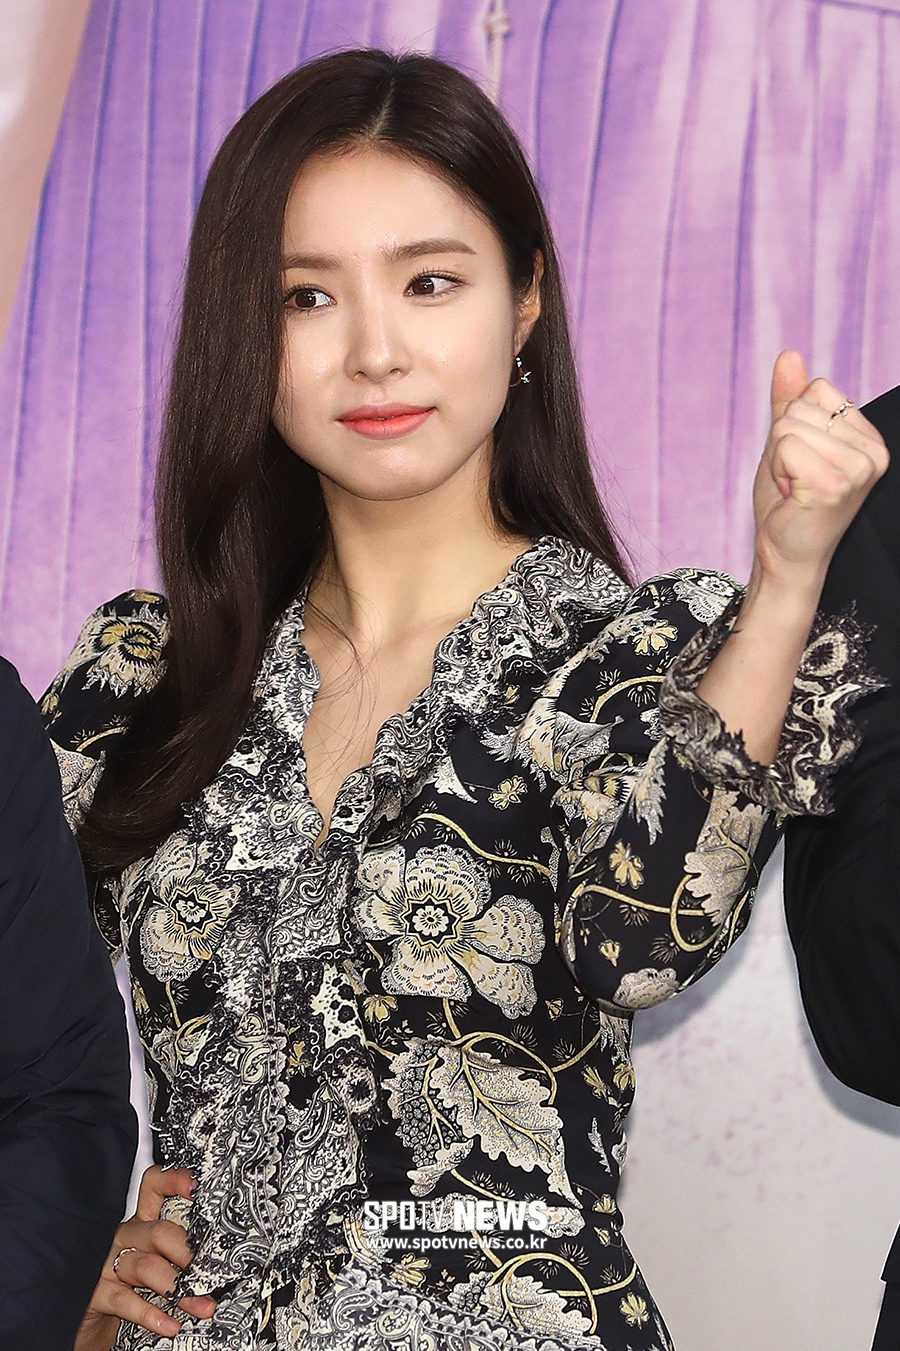 <p> MBC new tree mini series new pipe to command start presentation 17 PM Seoul MAPO-GU Sangam-dong MBC Golden mouse Hall in the open. Actress Shin Se-kyung, this pose has.</p>